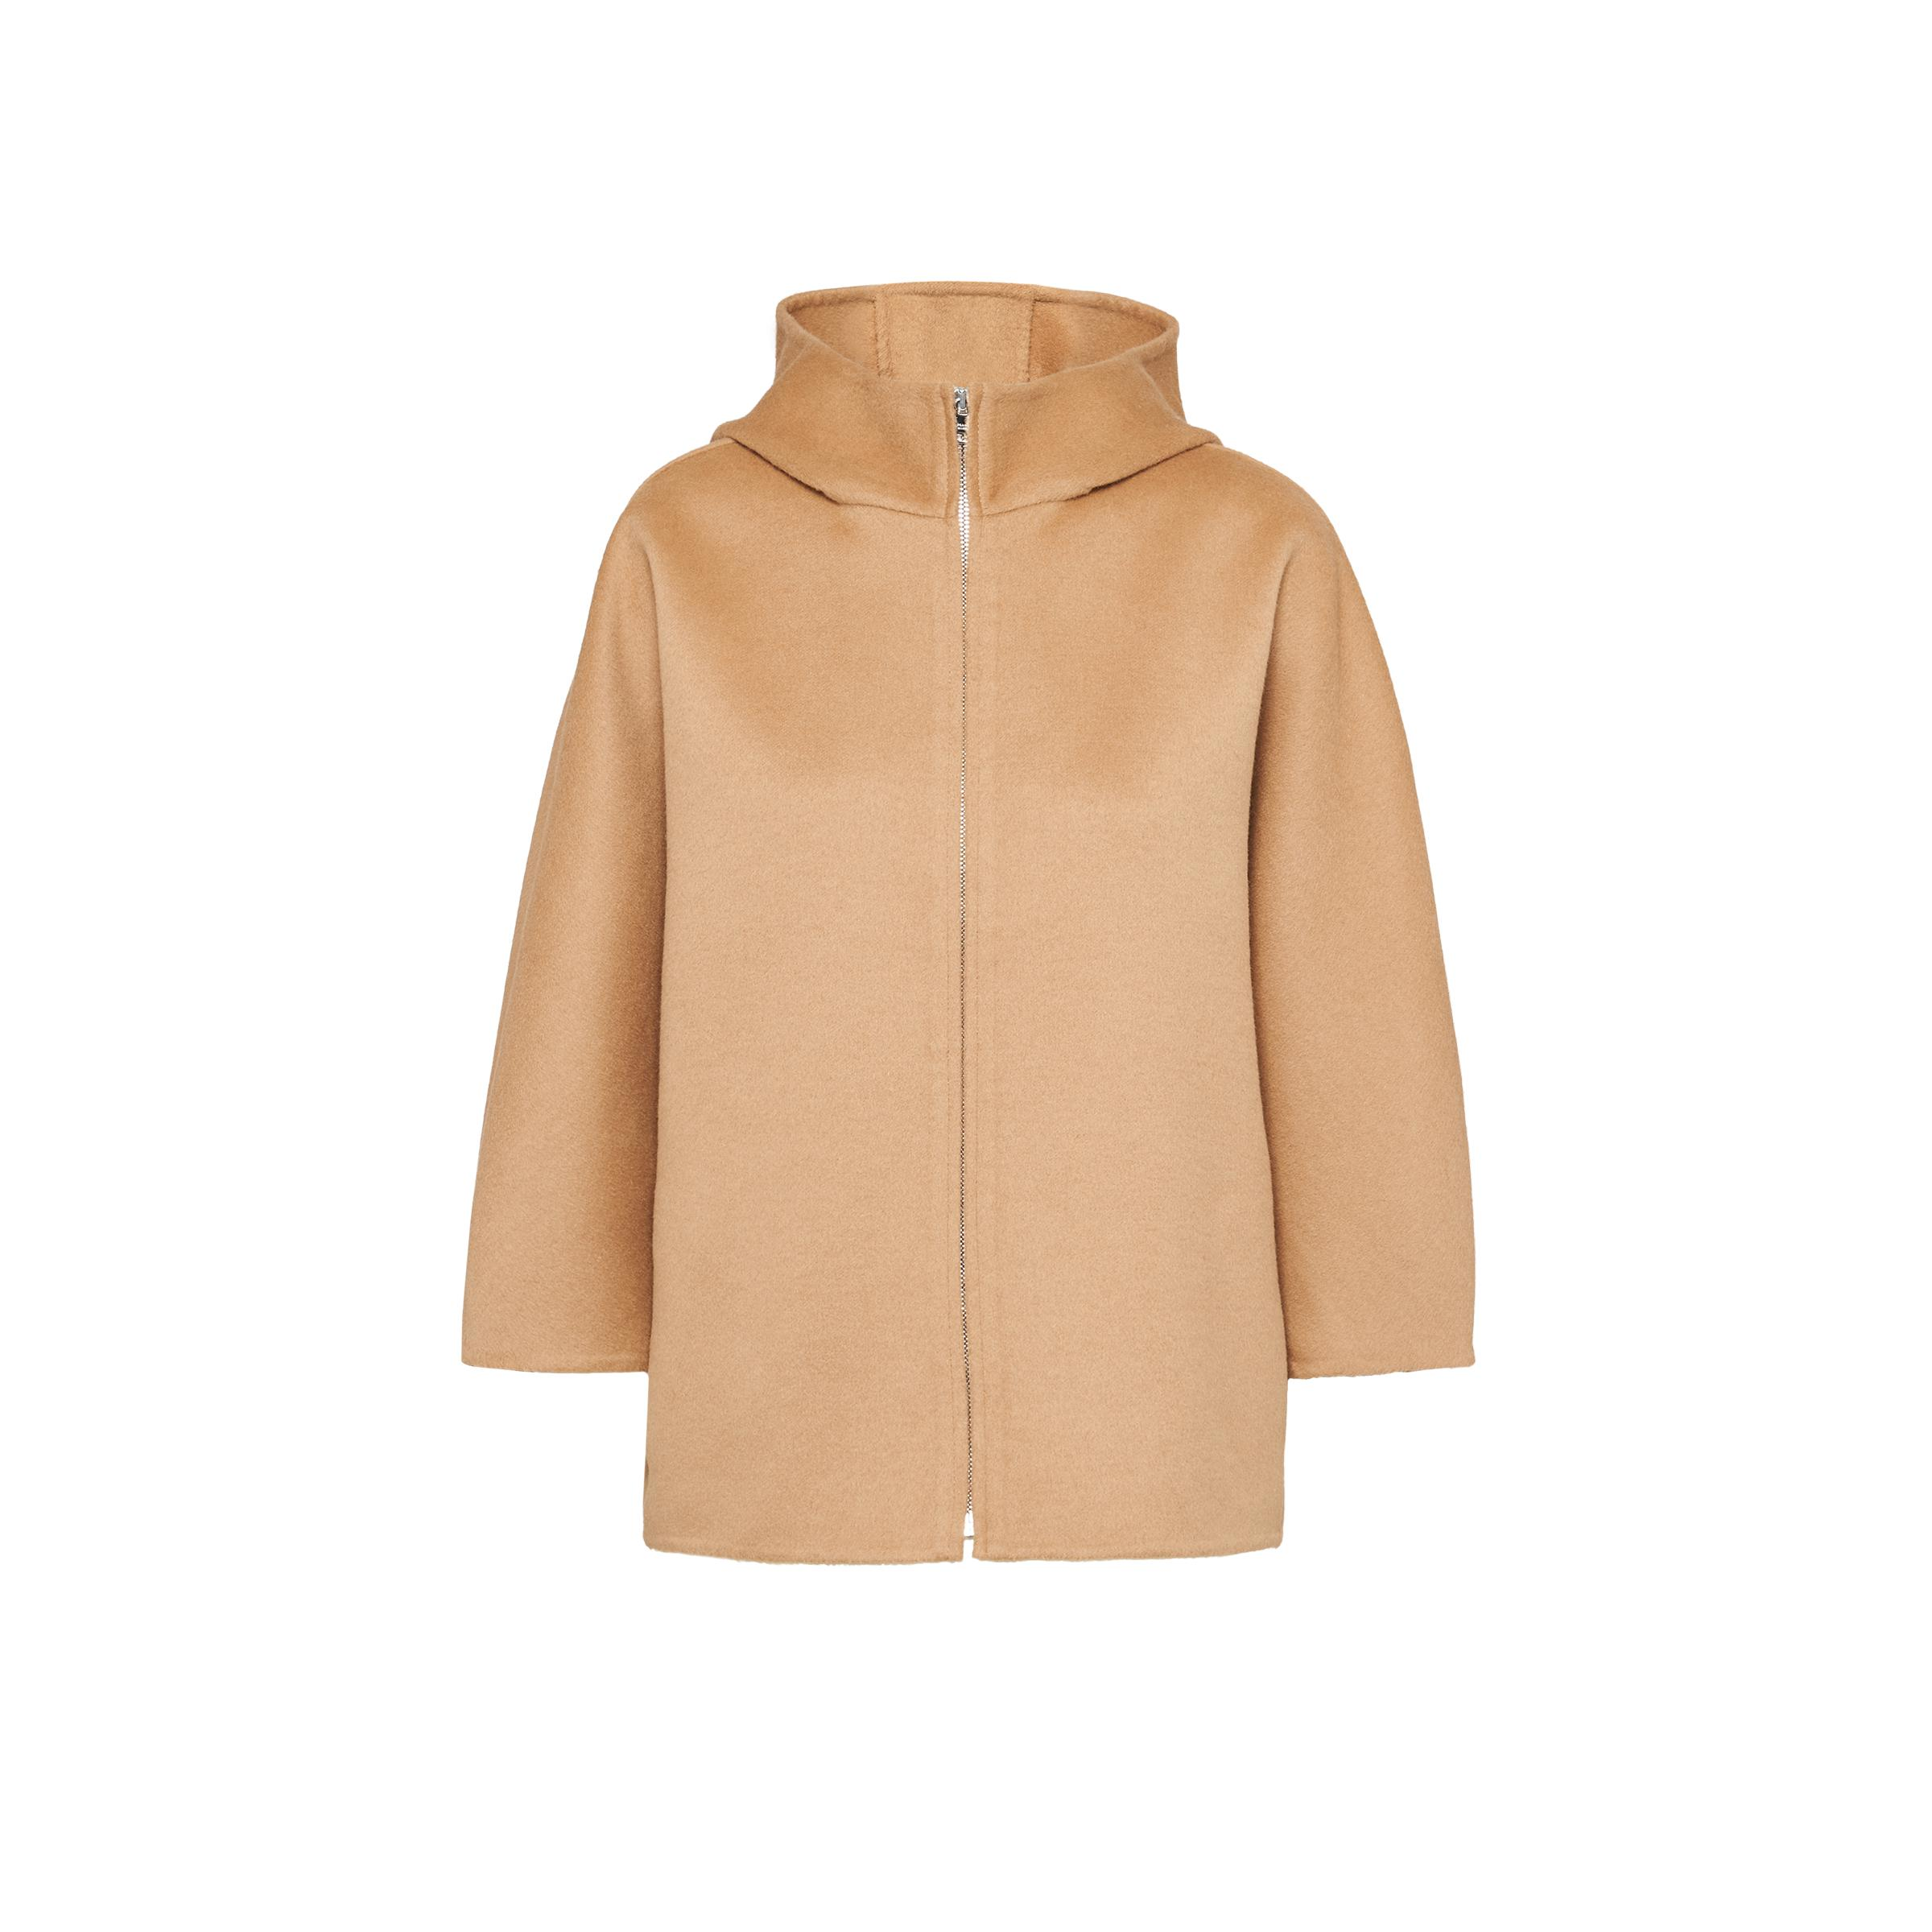 Wool And Cashmere Jacket Women Camel Brown